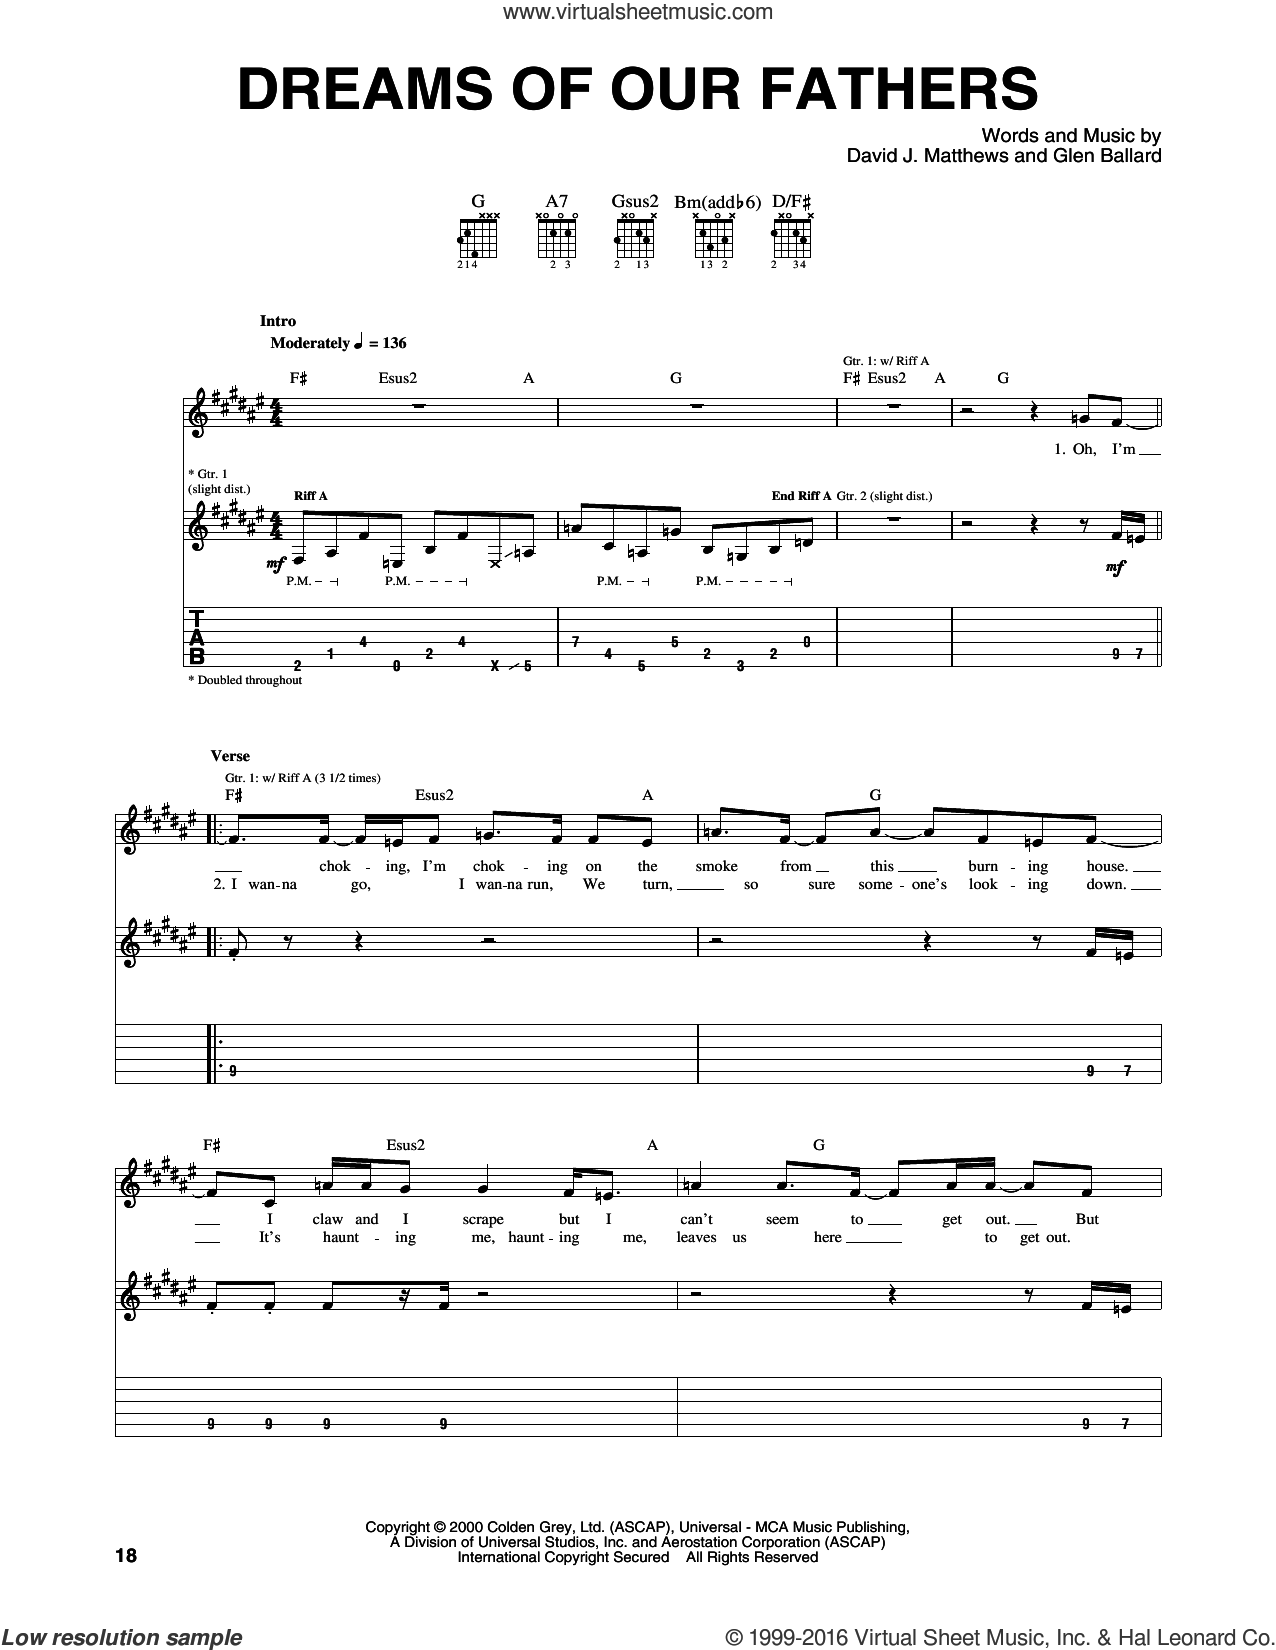 Dreams Of Our Fathers sheet music for guitar (tablature) by Glen Ballard and Dave Matthews Band. Score Image Preview.